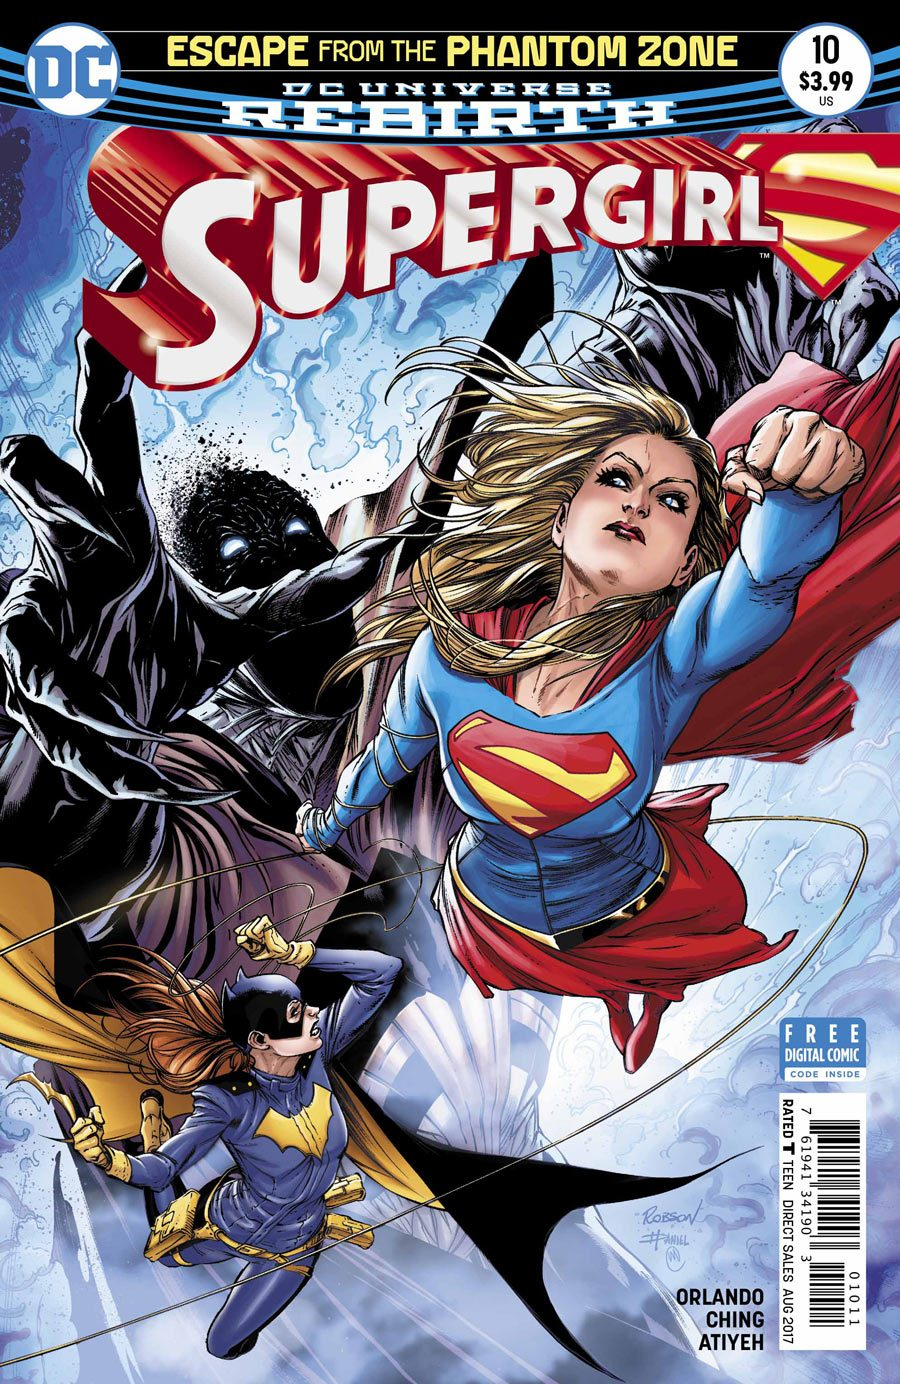 Supergirl #10 Review